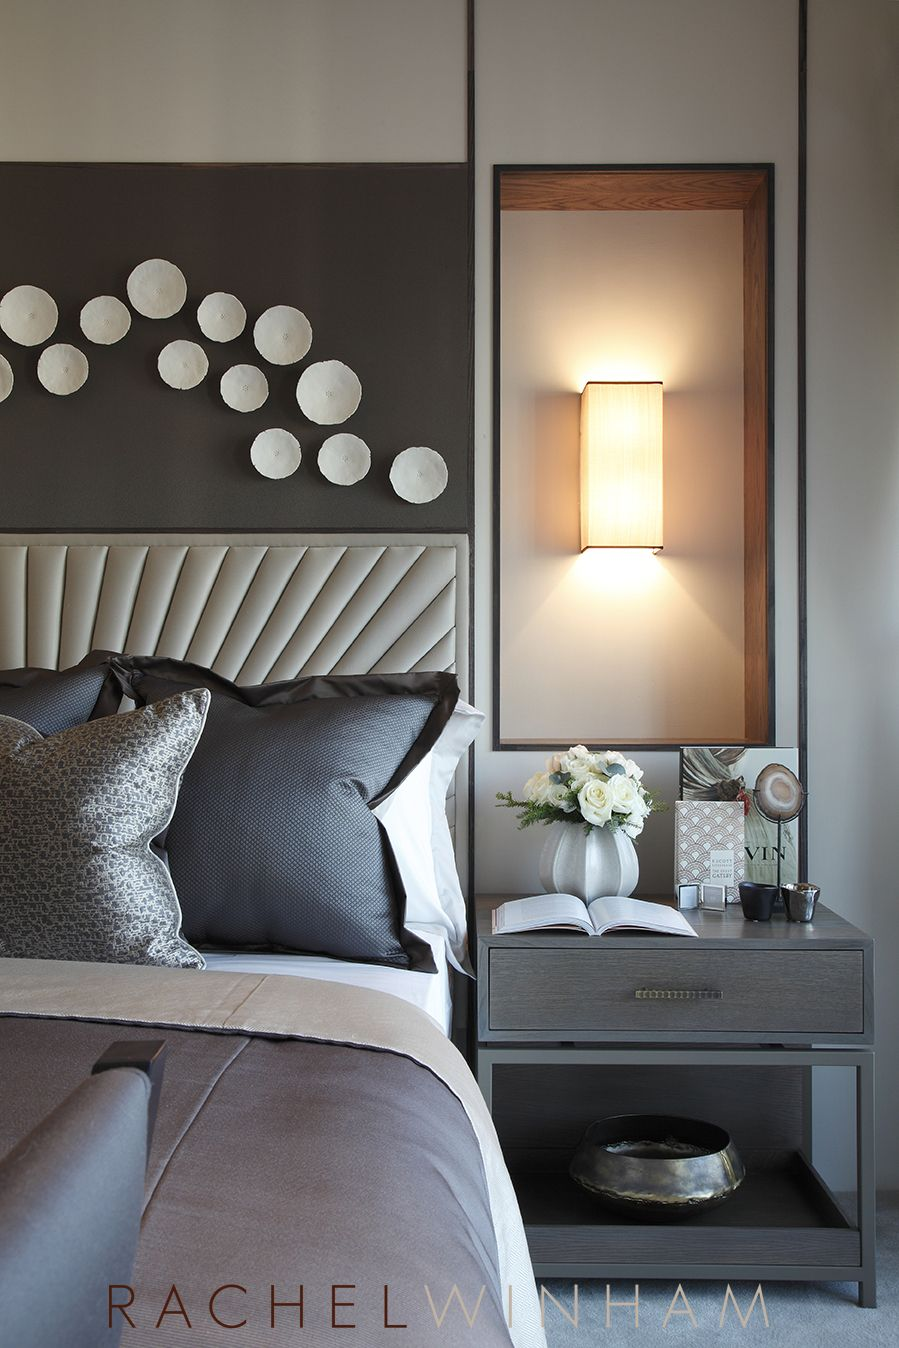 love this..stunning lights and the big headboard looks fab too